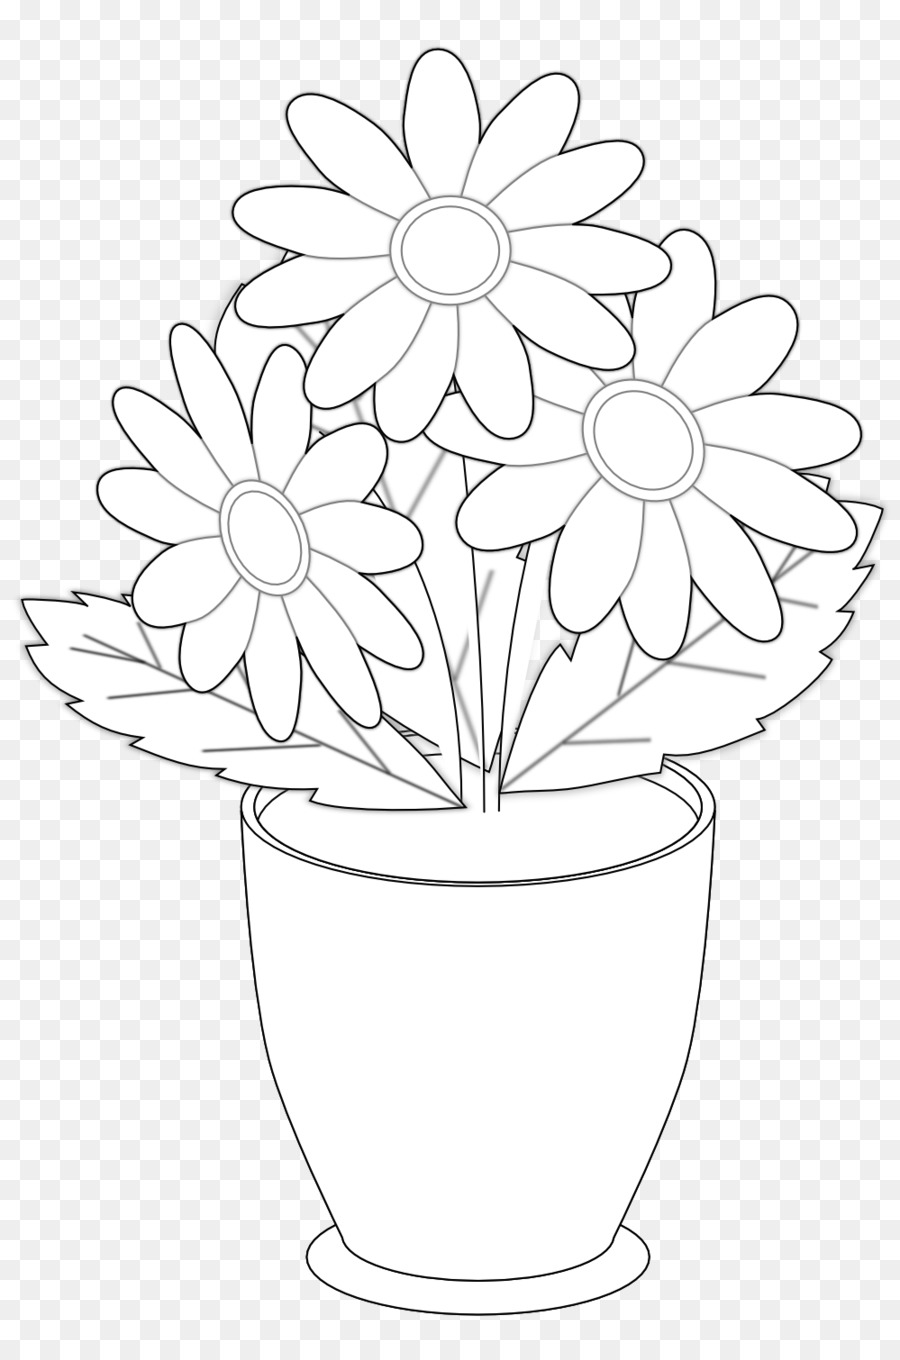 Drawing vase flower black and white clip art flower vases with drawing vase flower black and white clip art flower vases with flowers clipart mightylinksfo